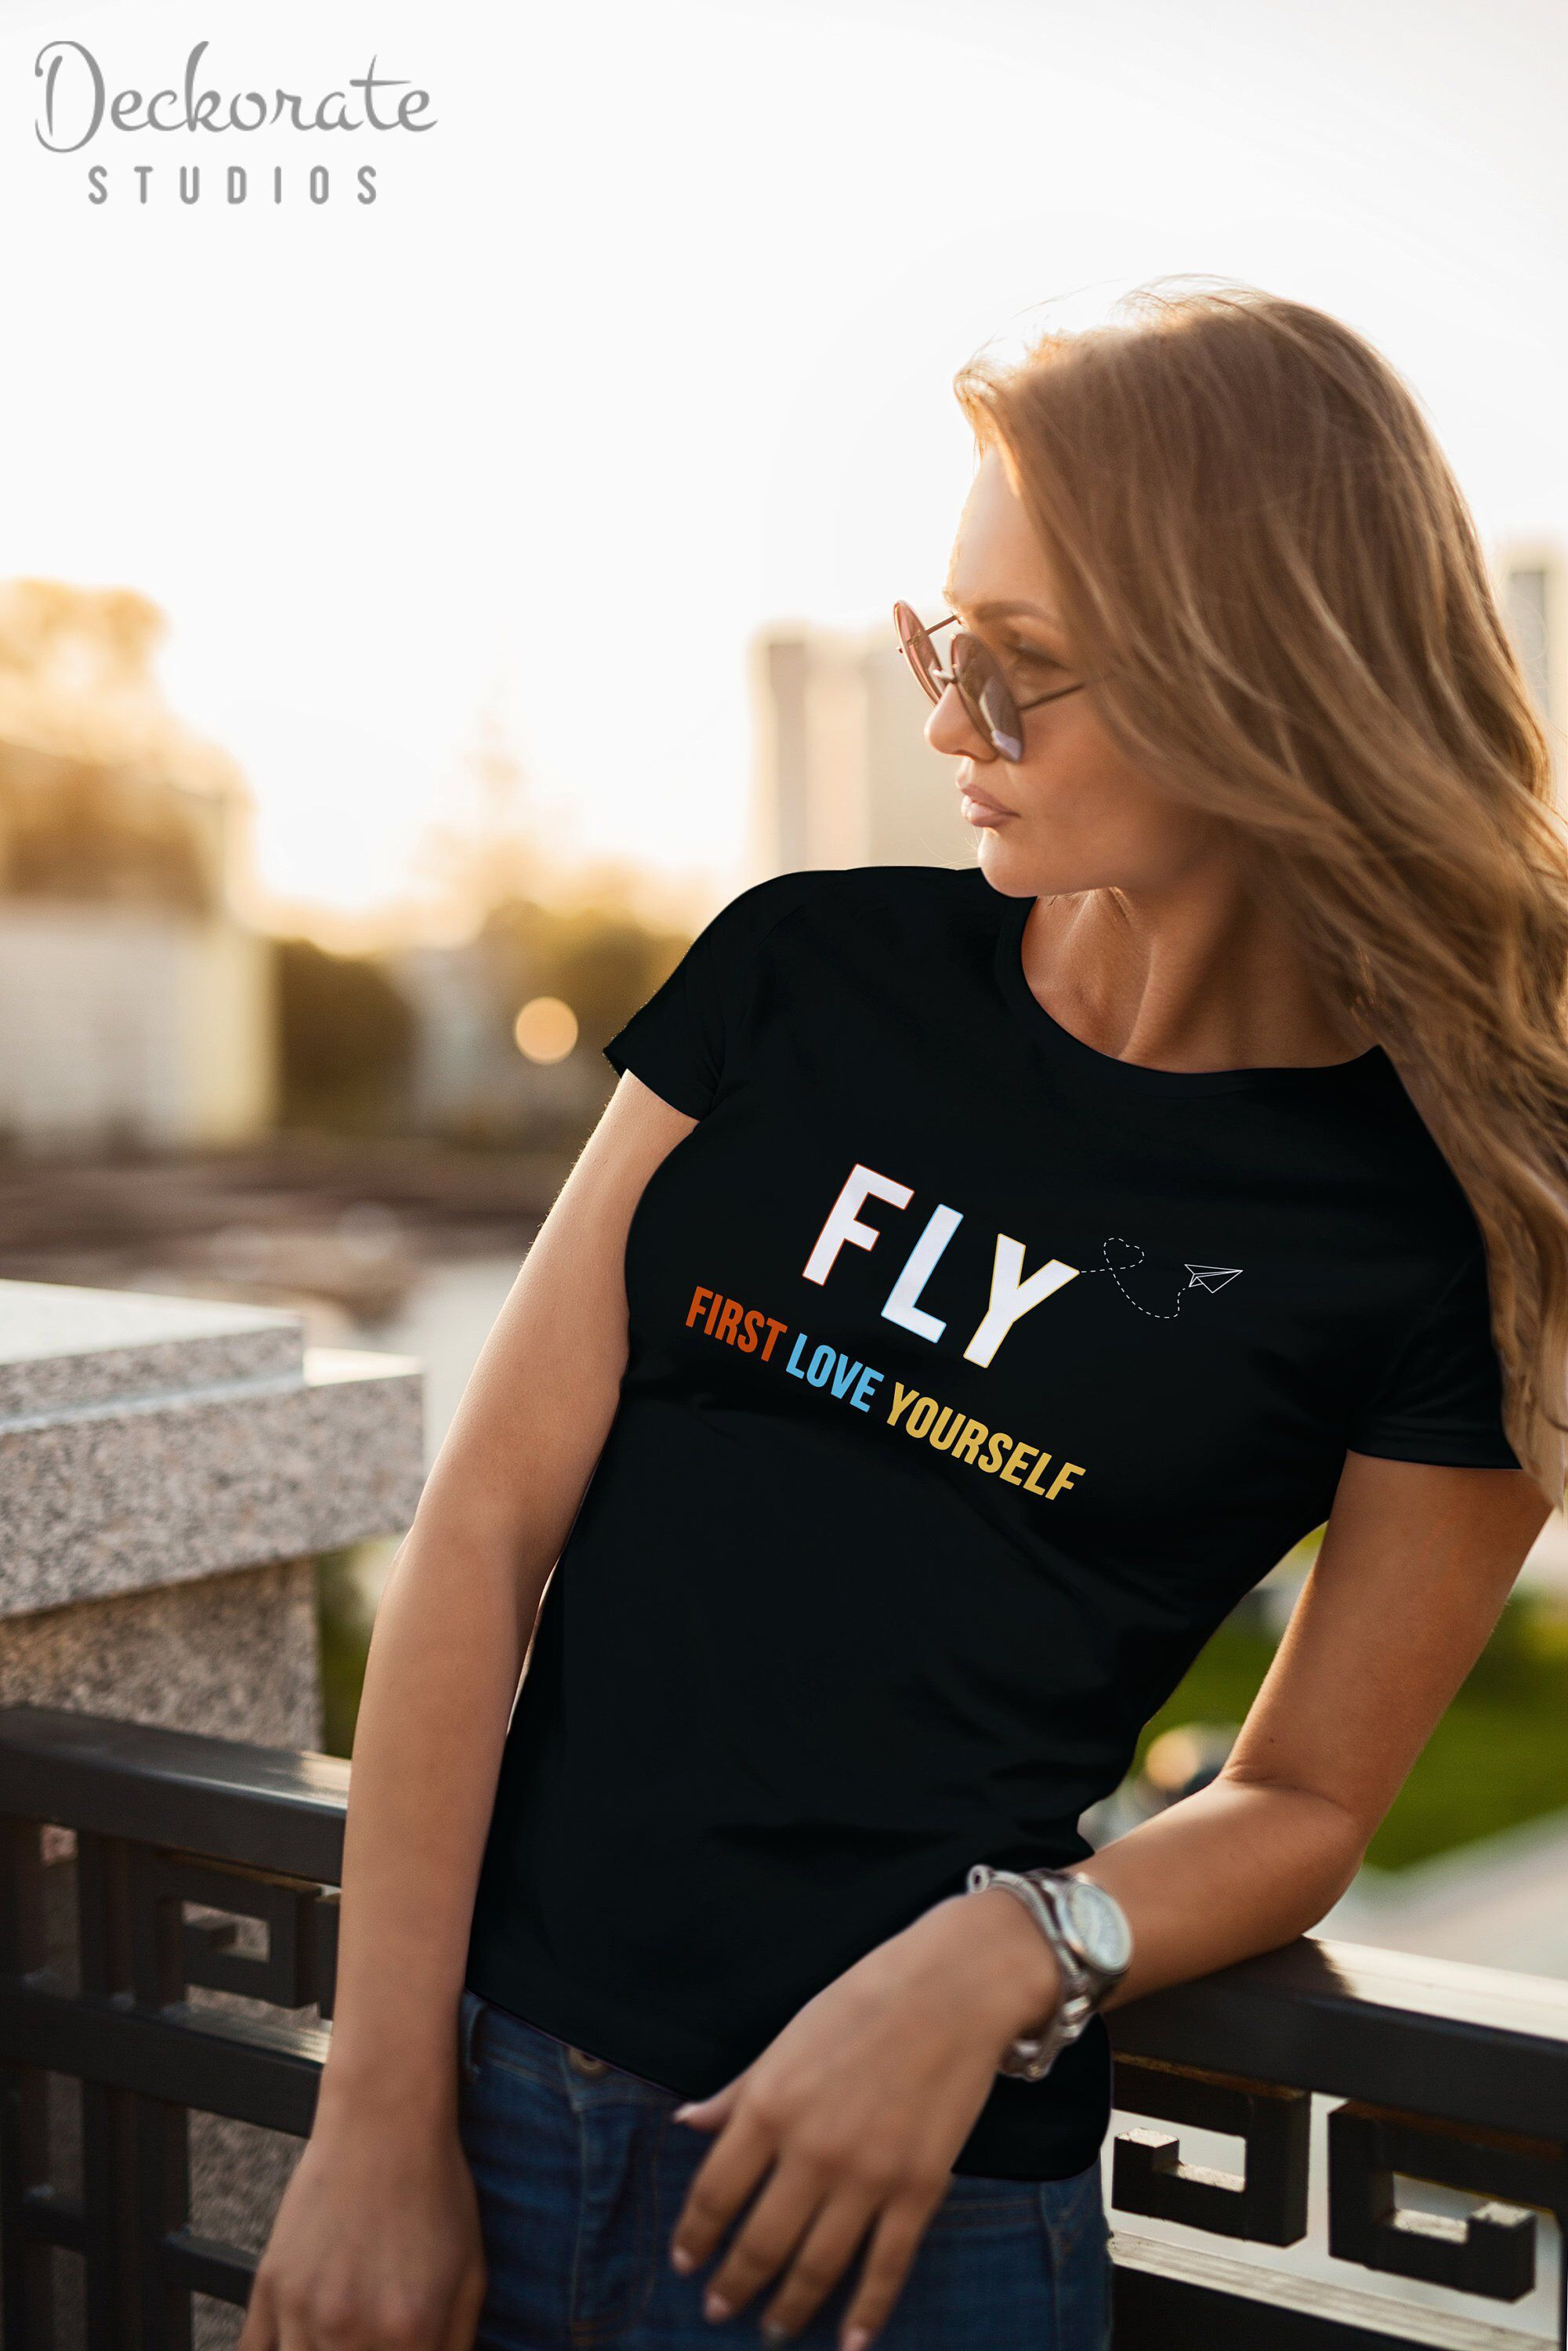 0616a8f0de2c8 Excited to share the latest addition to my  etsy shop  Motivational t shirt  FLY First Love Yourself feminist solo travel loving strong womens recovery  gift ...